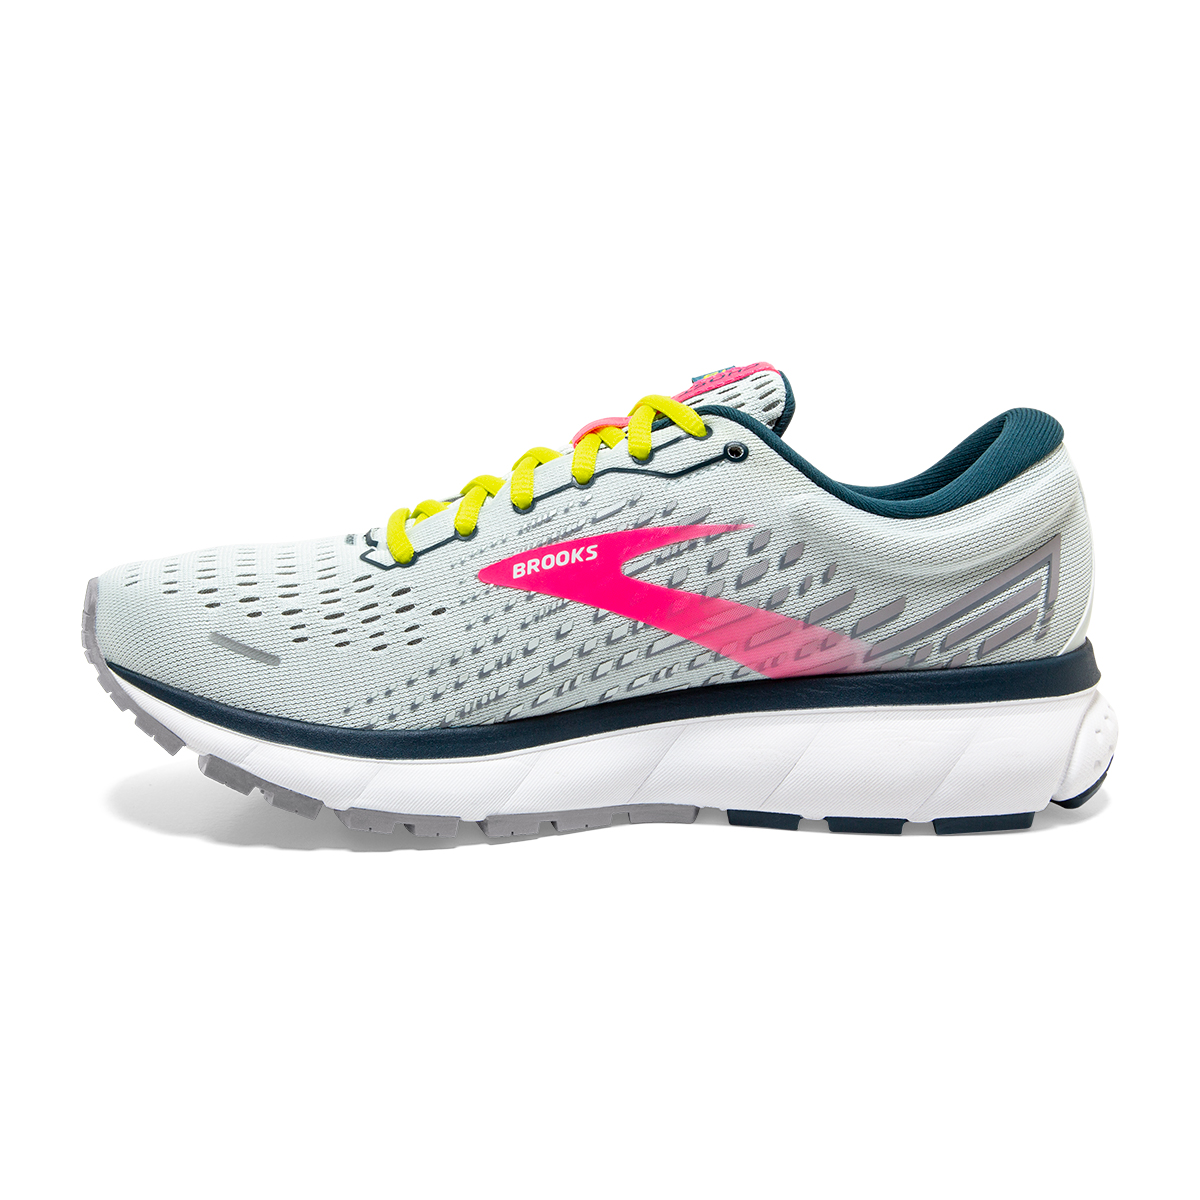 Women's Brooks Ghost 13 Running Shoes - Color: Ice Flow/Pink/Pond - Size: 5 - Width: Regular, Ice Flow/Pink/Pond, large, image 2